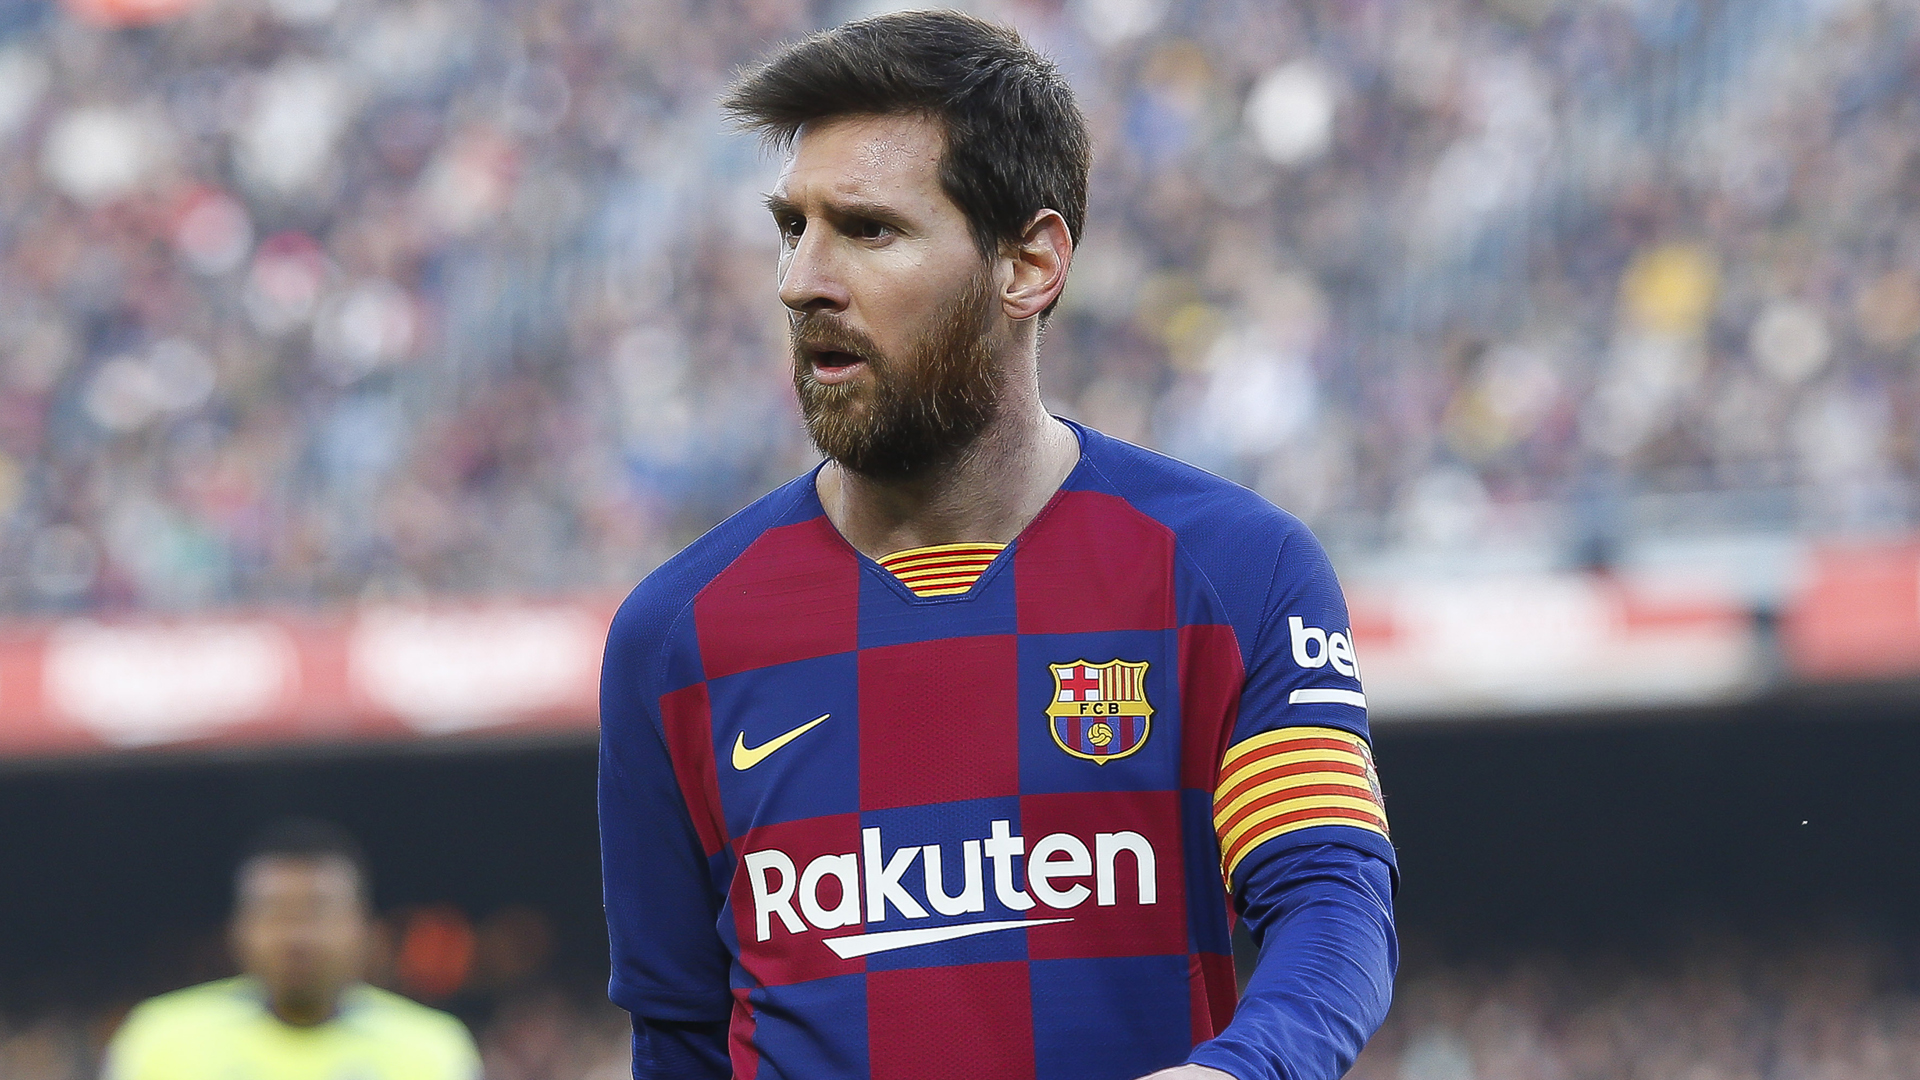 Coronavirus: Messi hailed as 'global example' amid footballer pay-cut debate